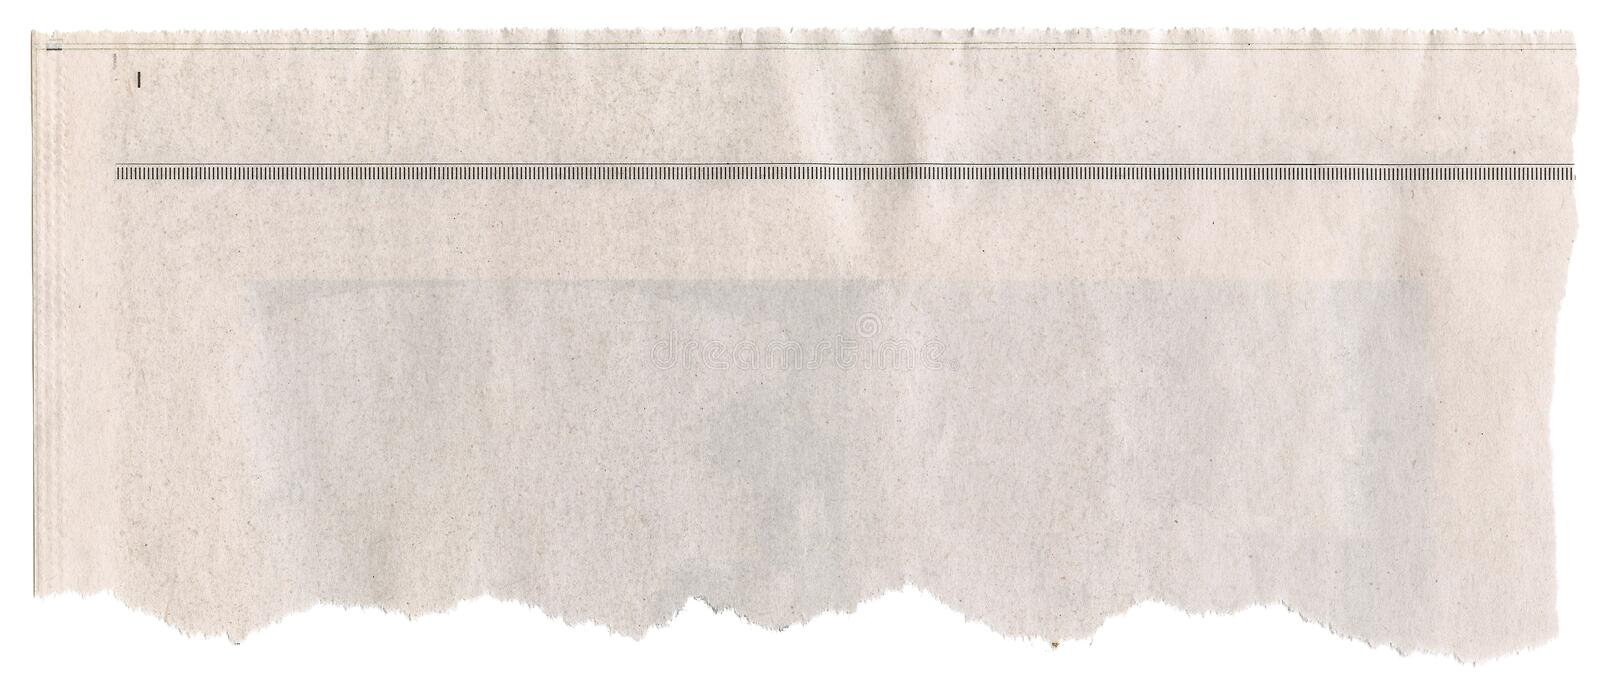 torn newspaper headline template - Pinarkubkireklamowe